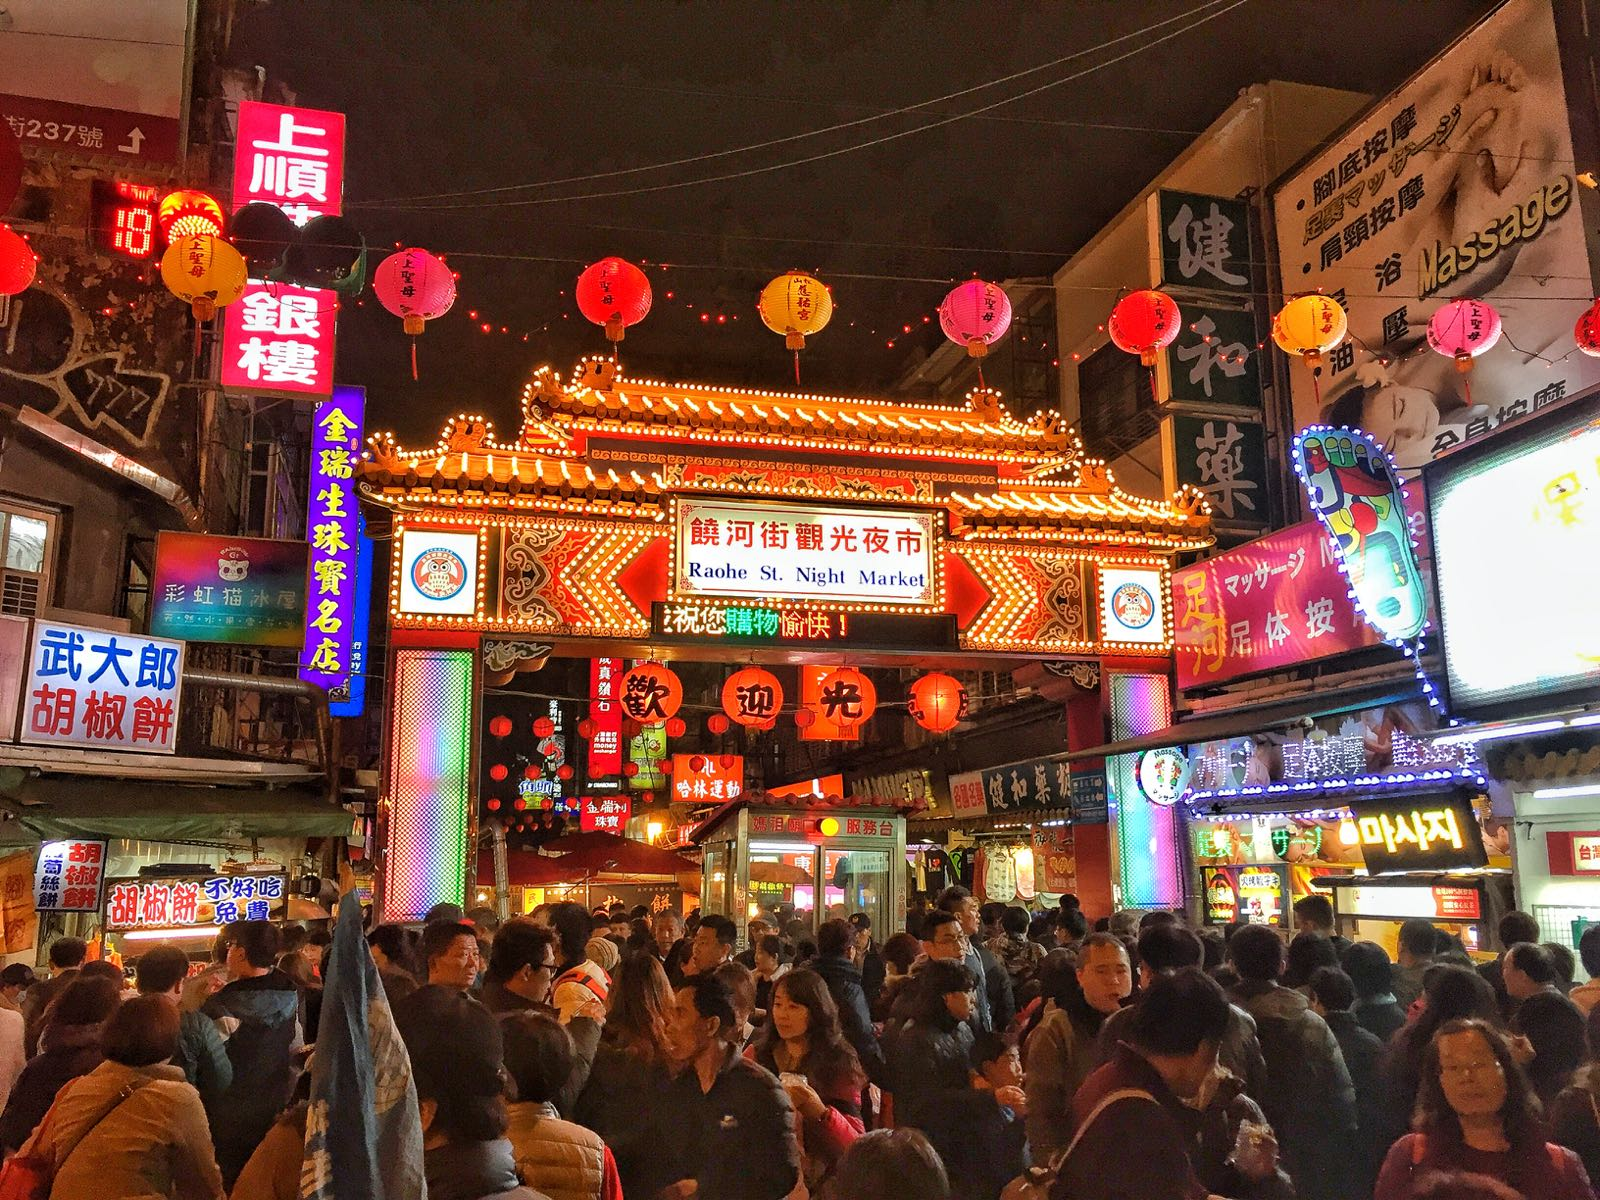 Raohe Night Market Taipei